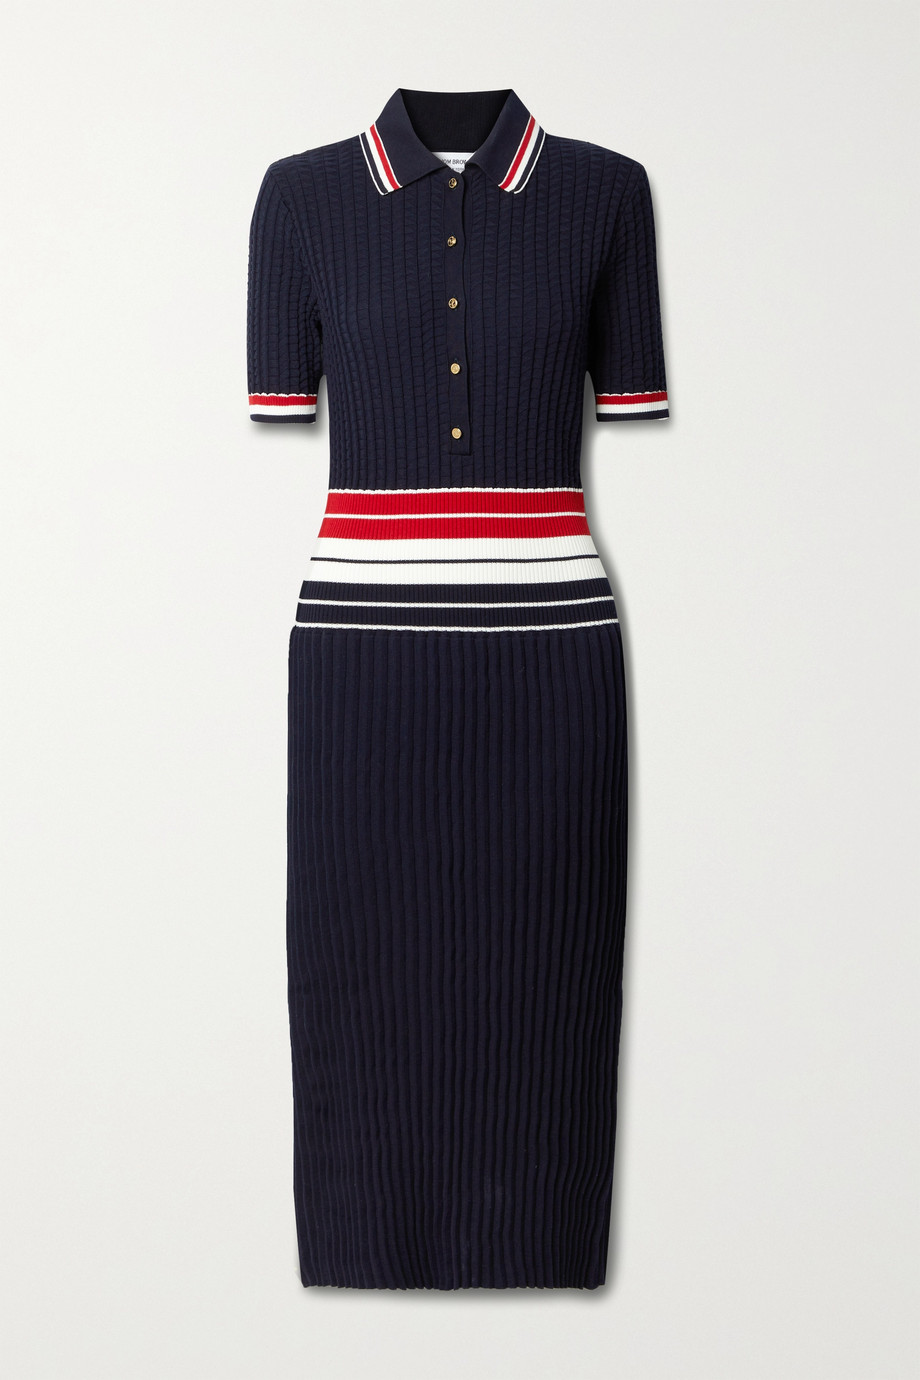 Thom Browne Striped pleated cotton-blend shirt dress